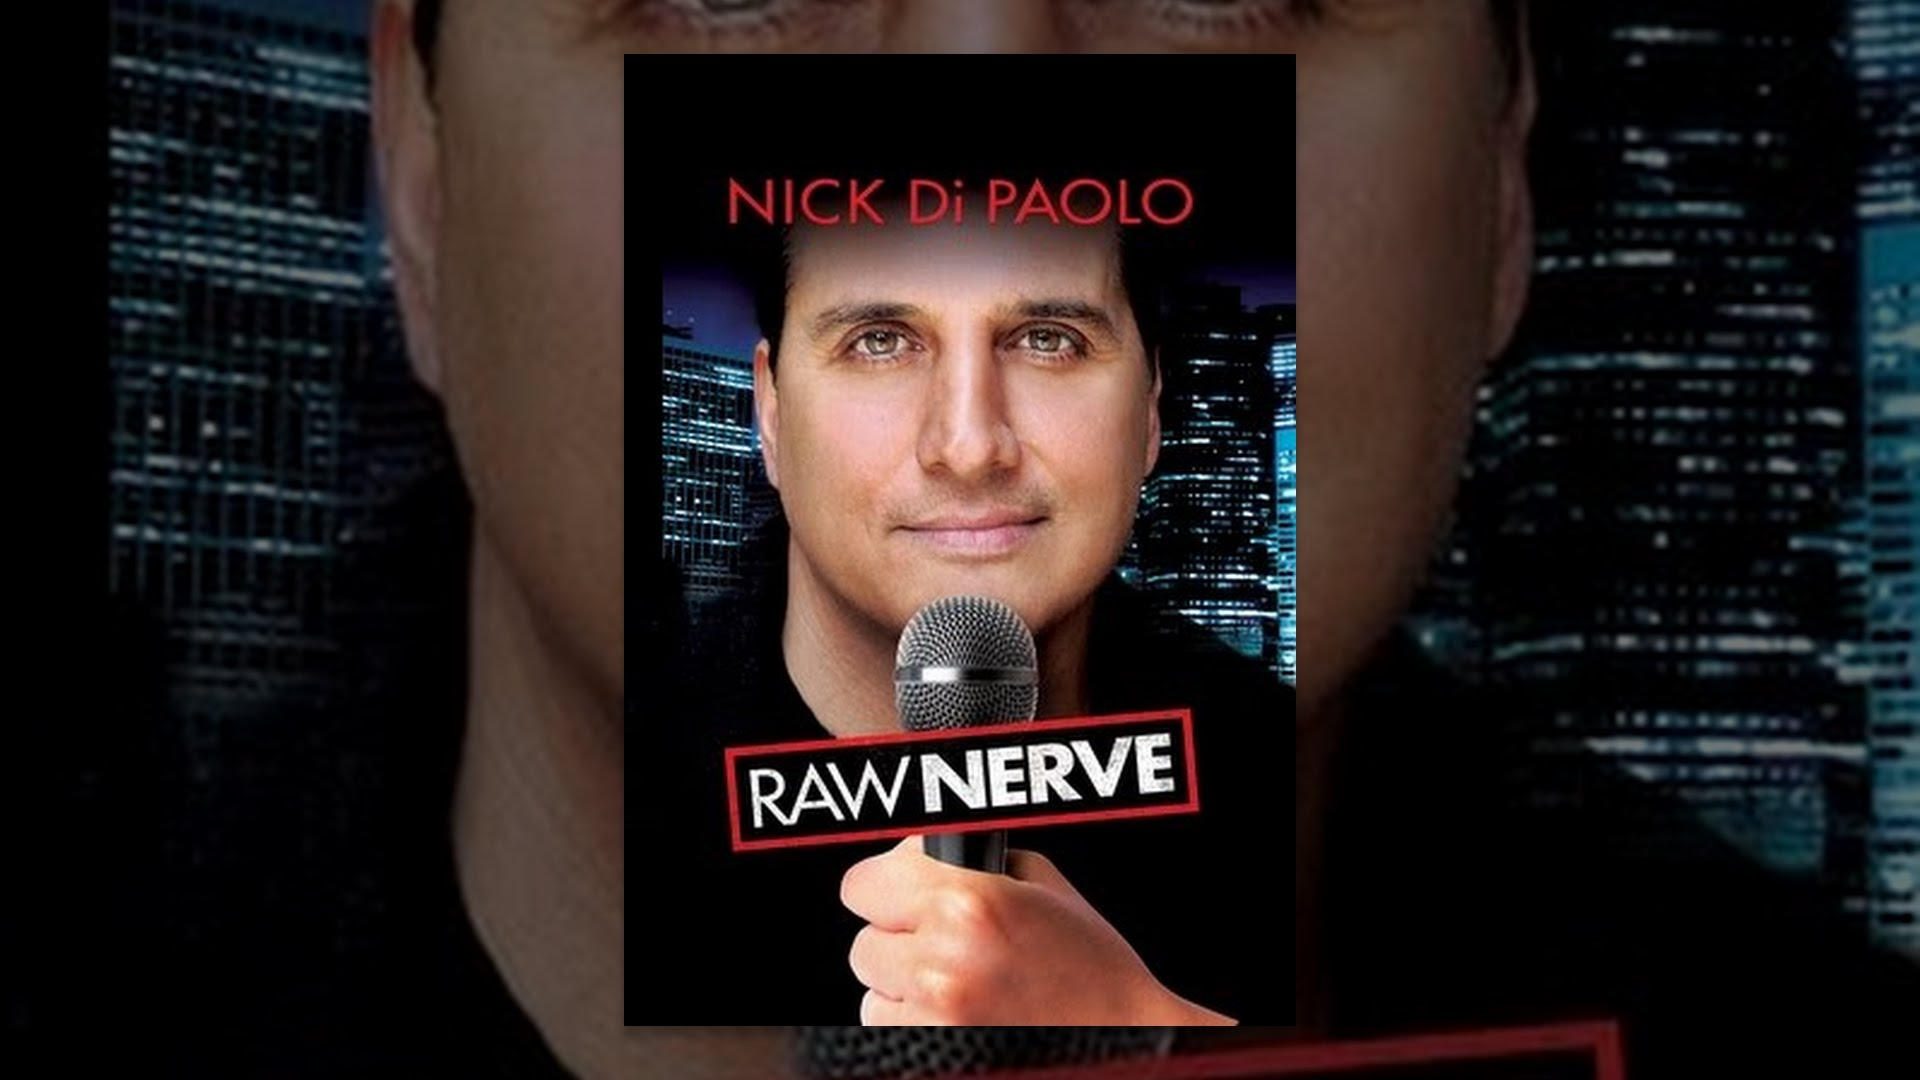 Nick Di Paolo: Raw Nerve